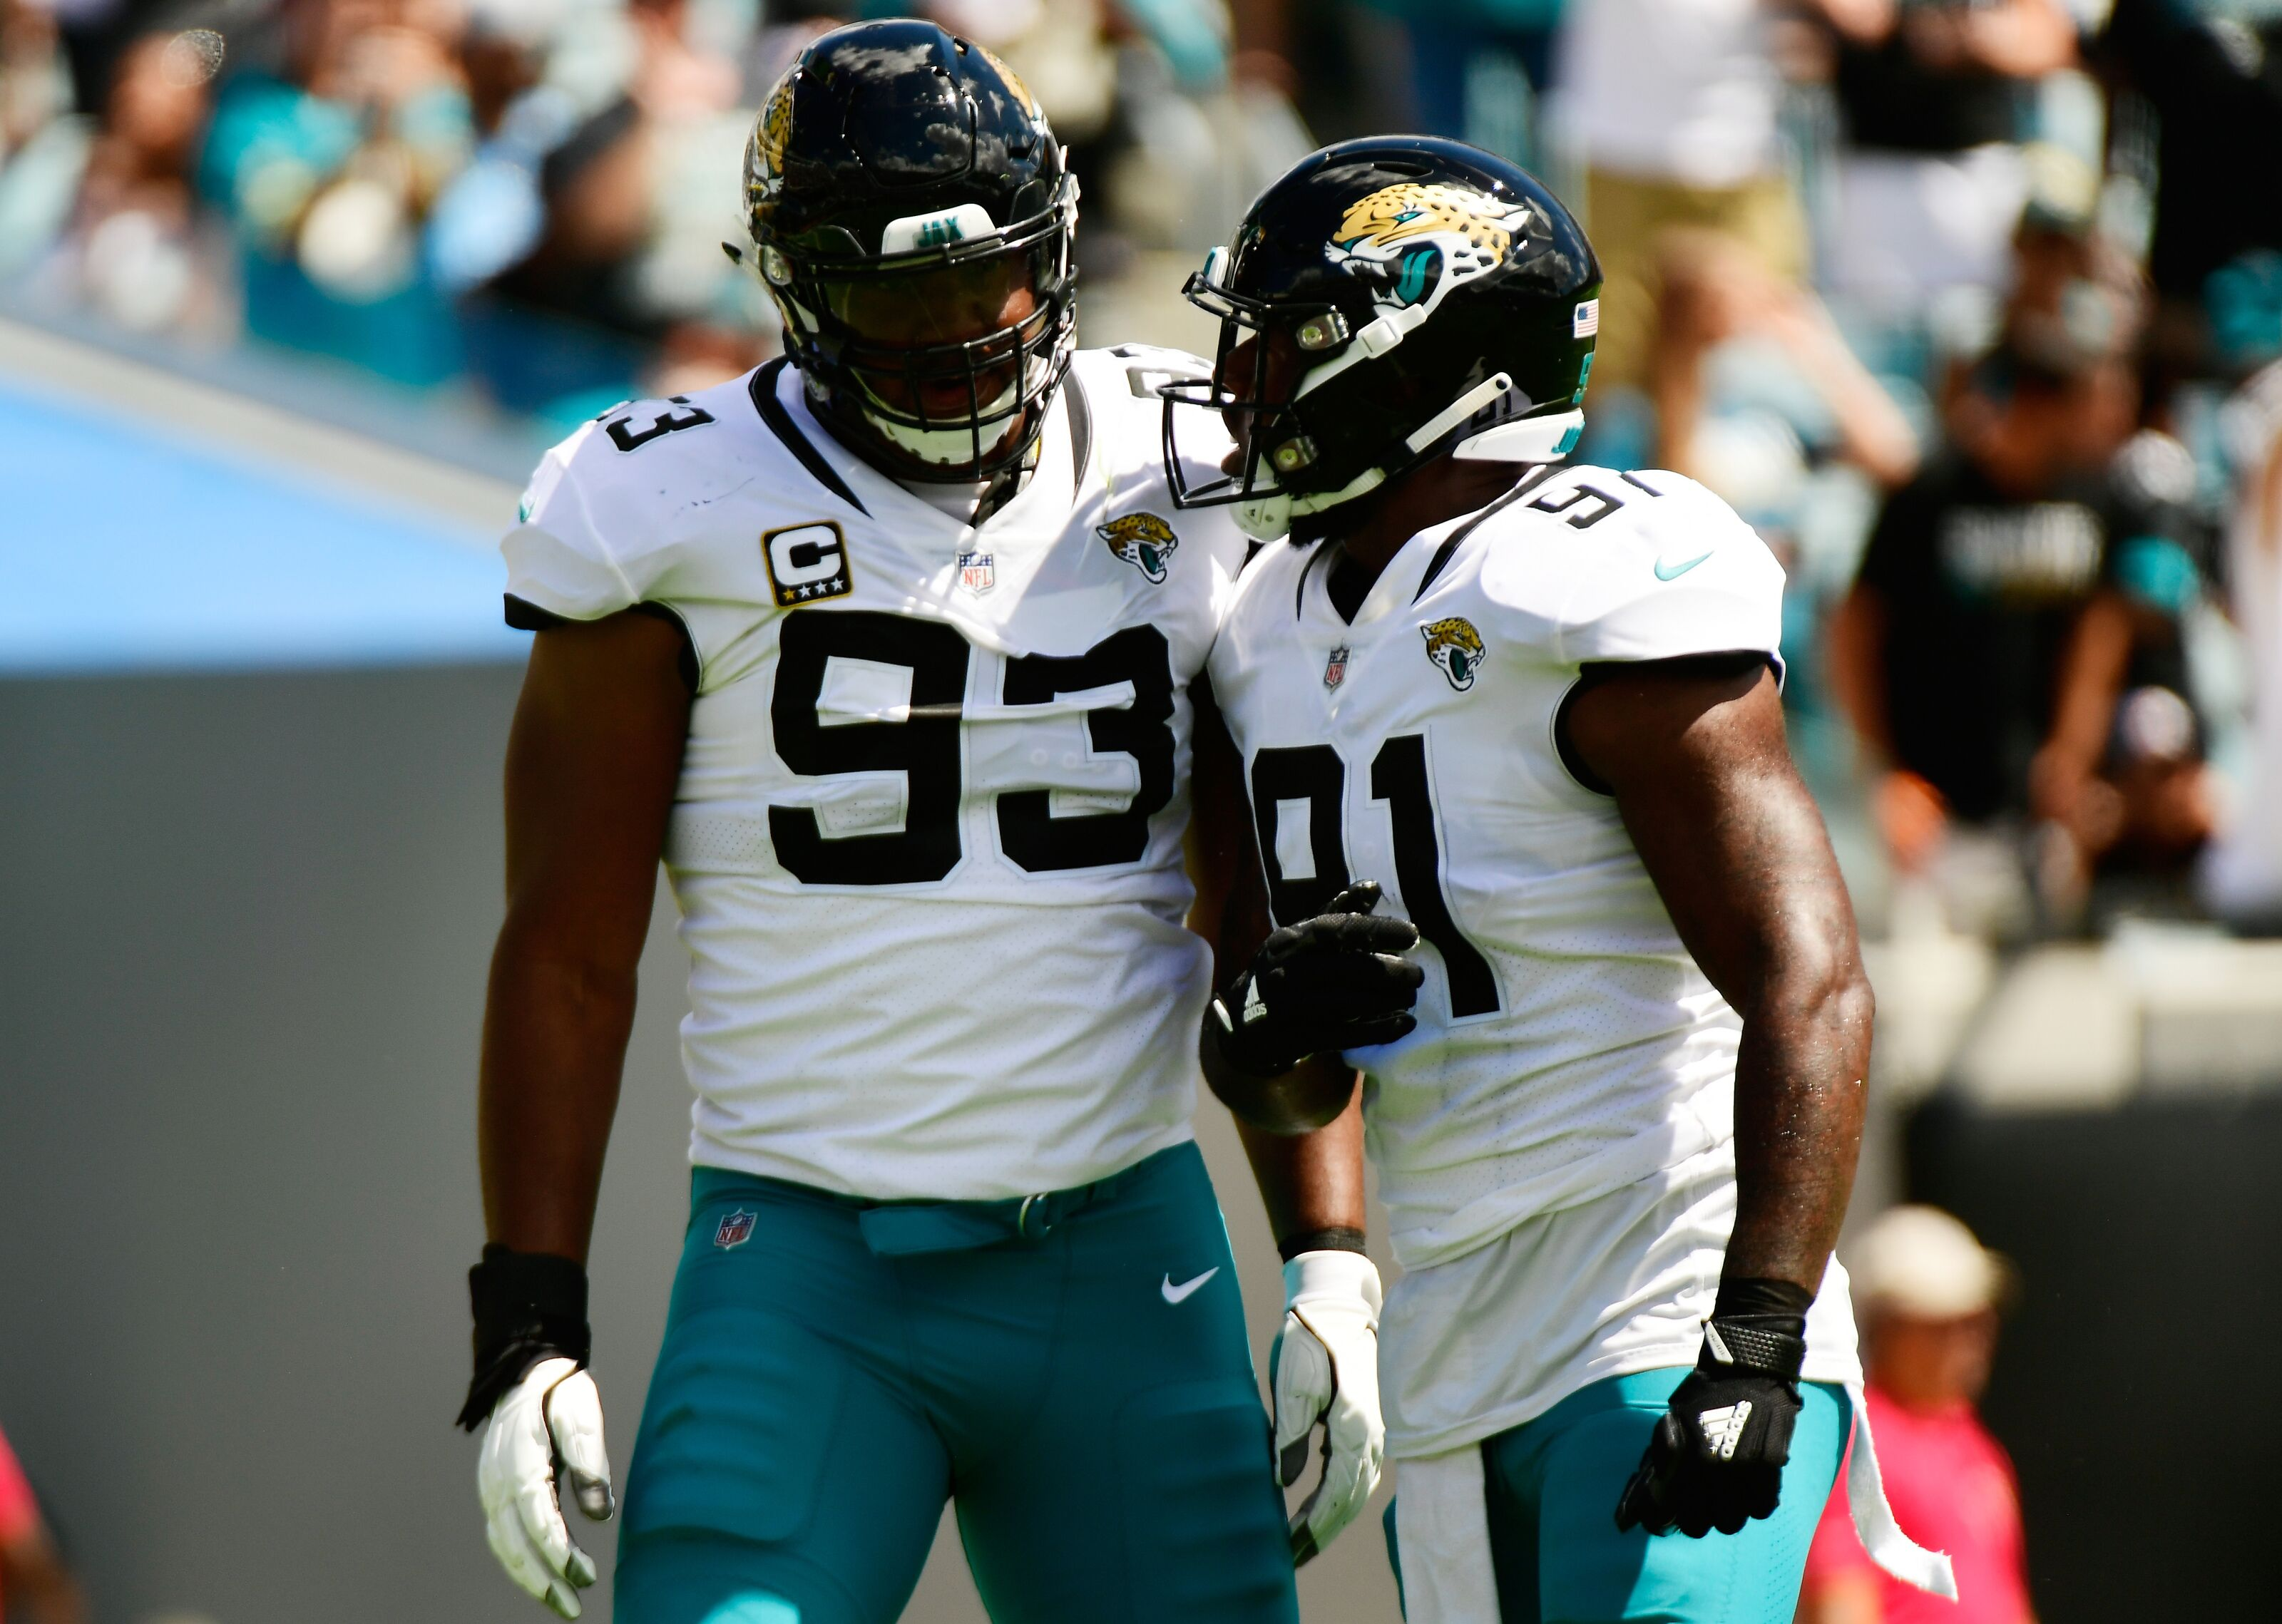 Jacksonville Jaguars Fall to the Tennessee Titans Once Again